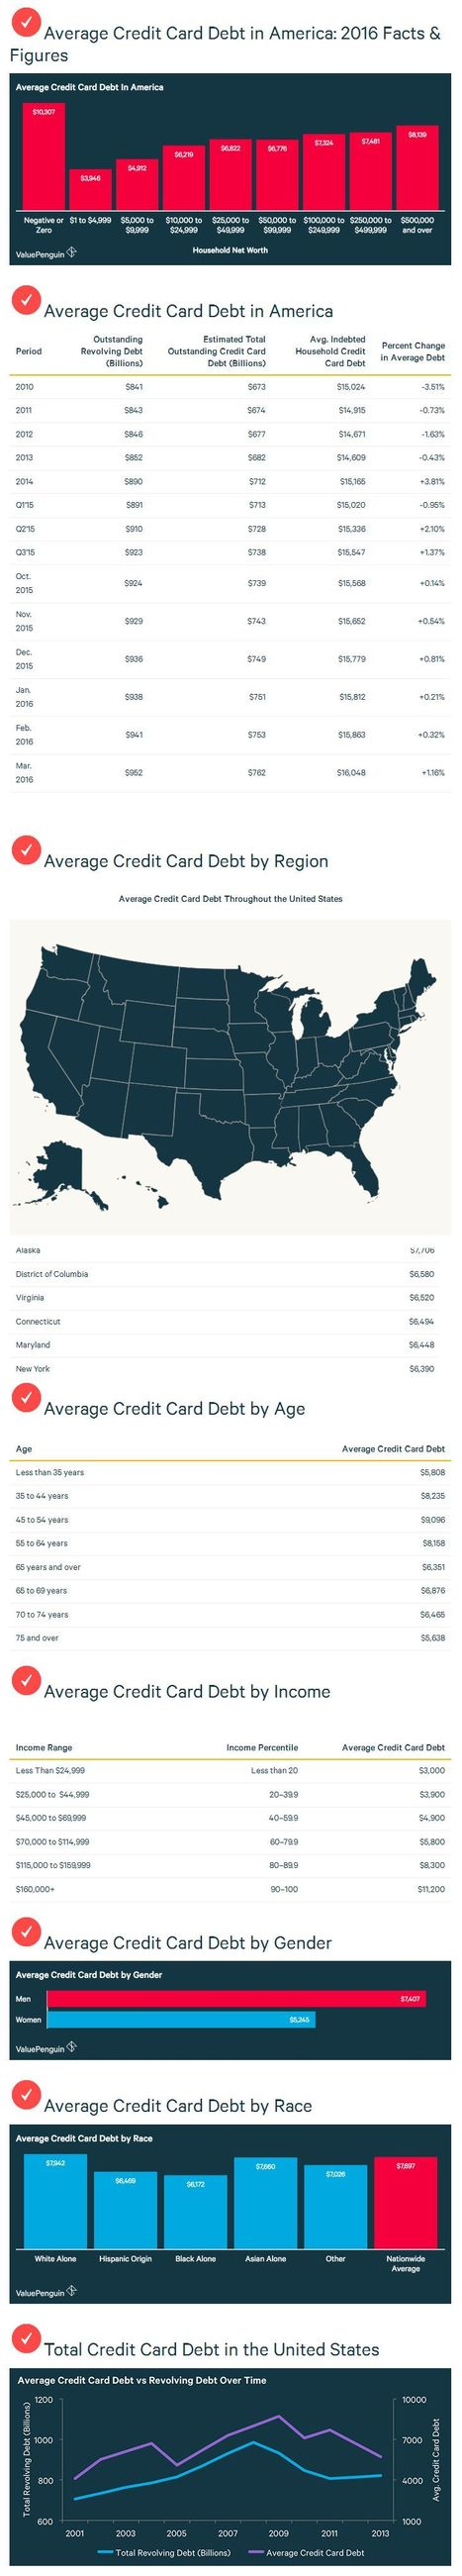 2016 American Household Credit Card Debt - INFOGRAPHIC | Health & Digital Tech Magazine - 2017 | Scoop.it